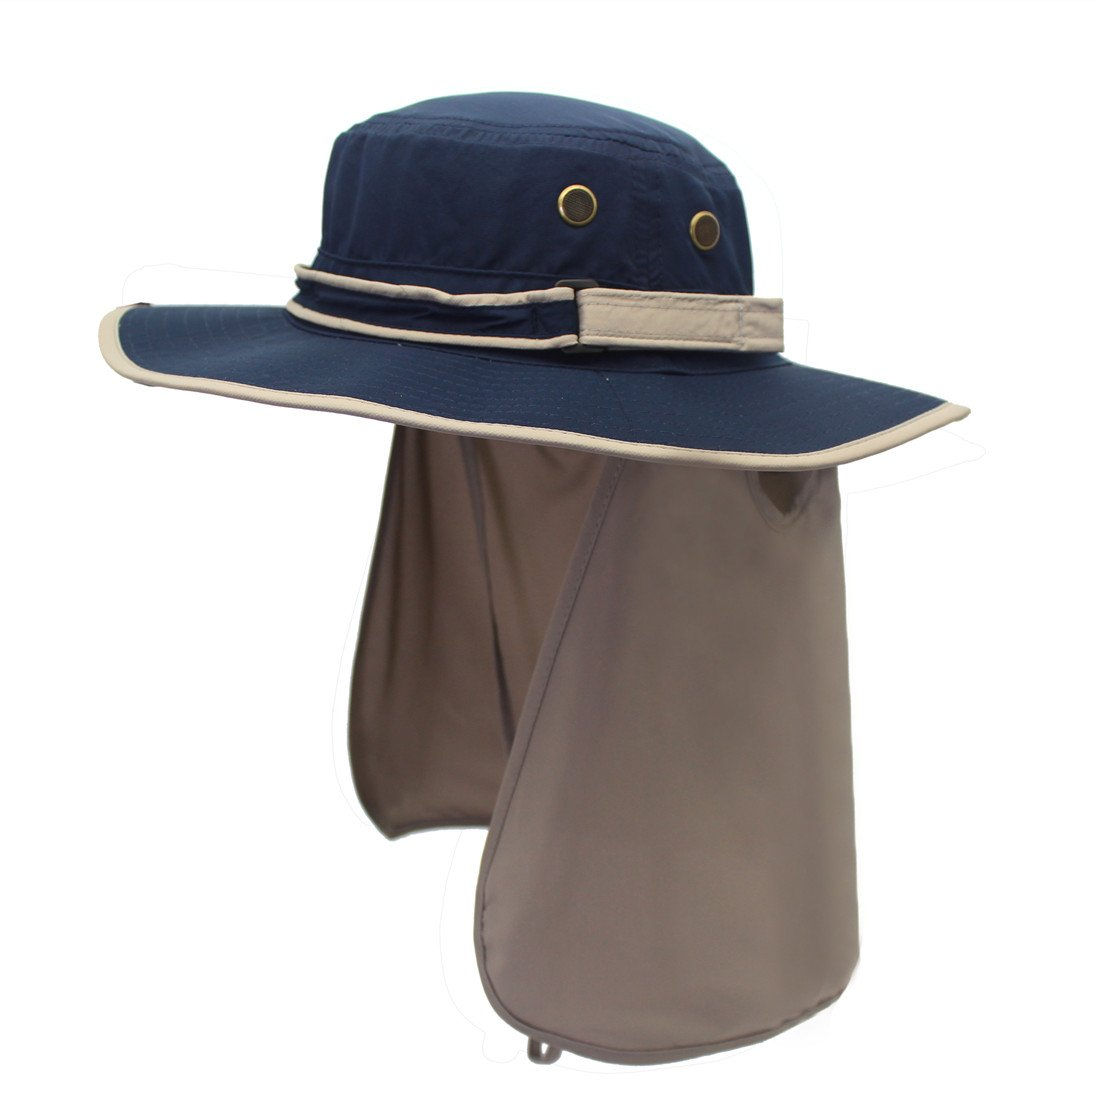 39dc66aa91c Decentron Unisex Quick Drying UV Protection Outdoor Sun Hat with Flap Neck  Cover product image